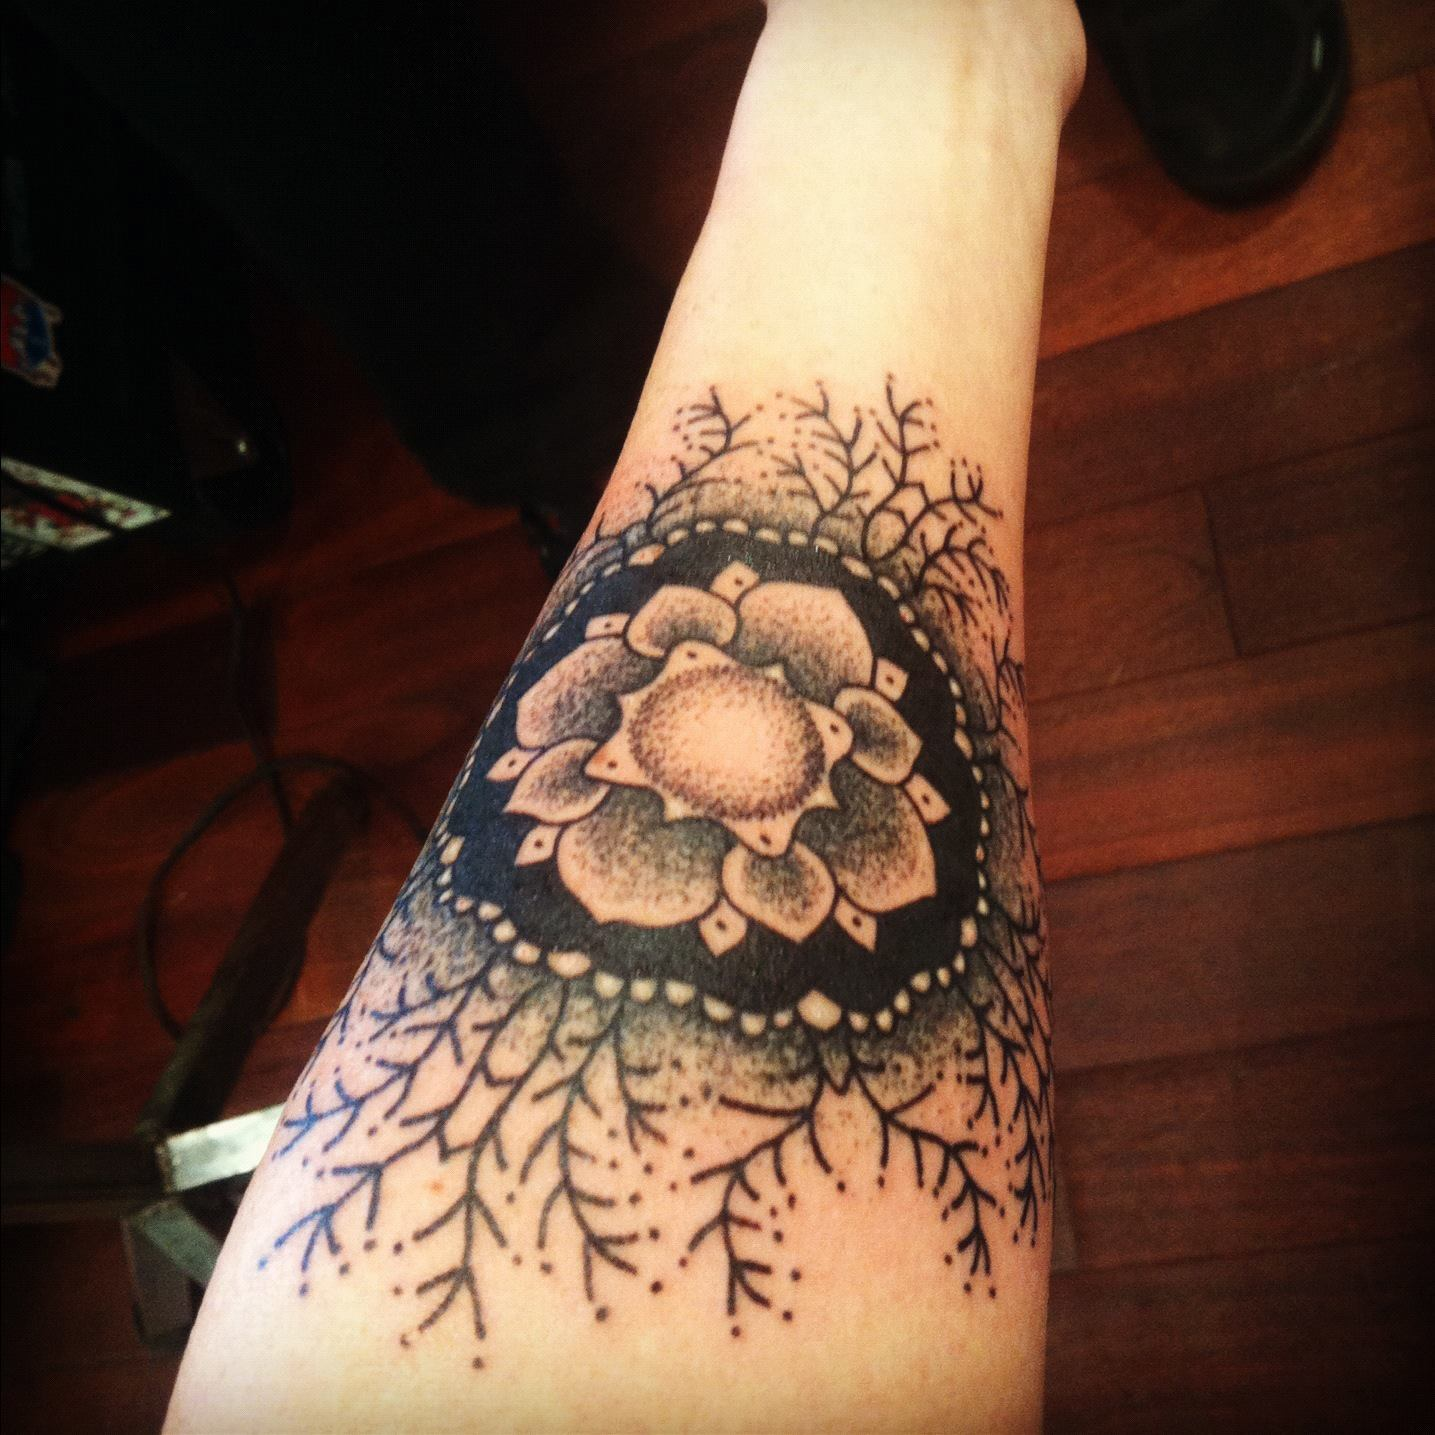 Mandala Wrist Tattoo Designs Ideas And Meaning: Mandala Tattoos Designs, Ideas And Meaning